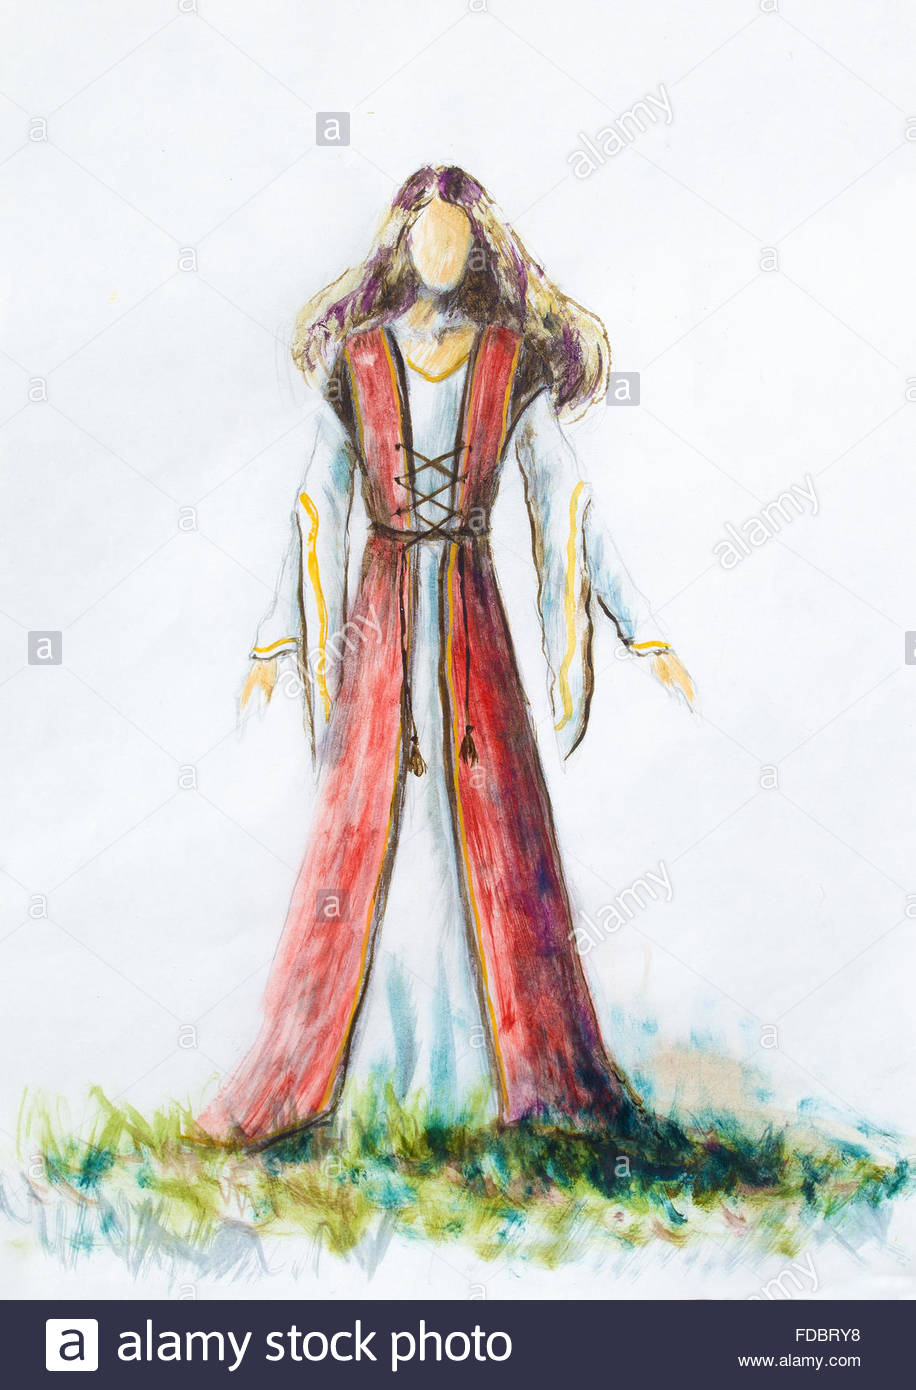 916x1390 Painting Of Woman Medieval Historic Dress On Paper, Designer